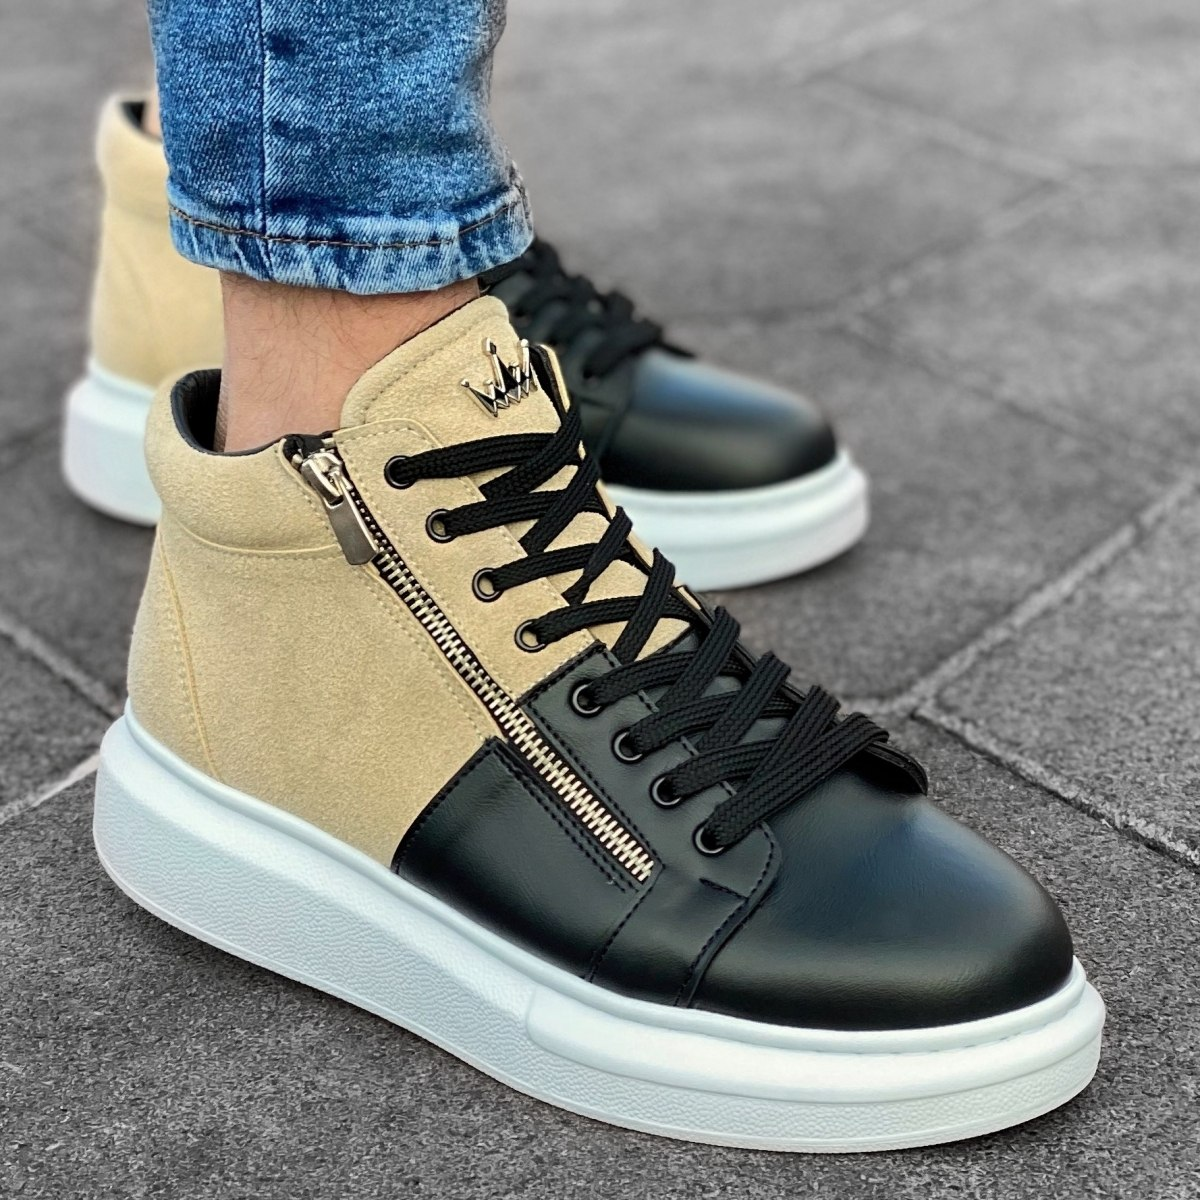 Hype Sole Zipped Style High Top Sneakers in Cream-Black